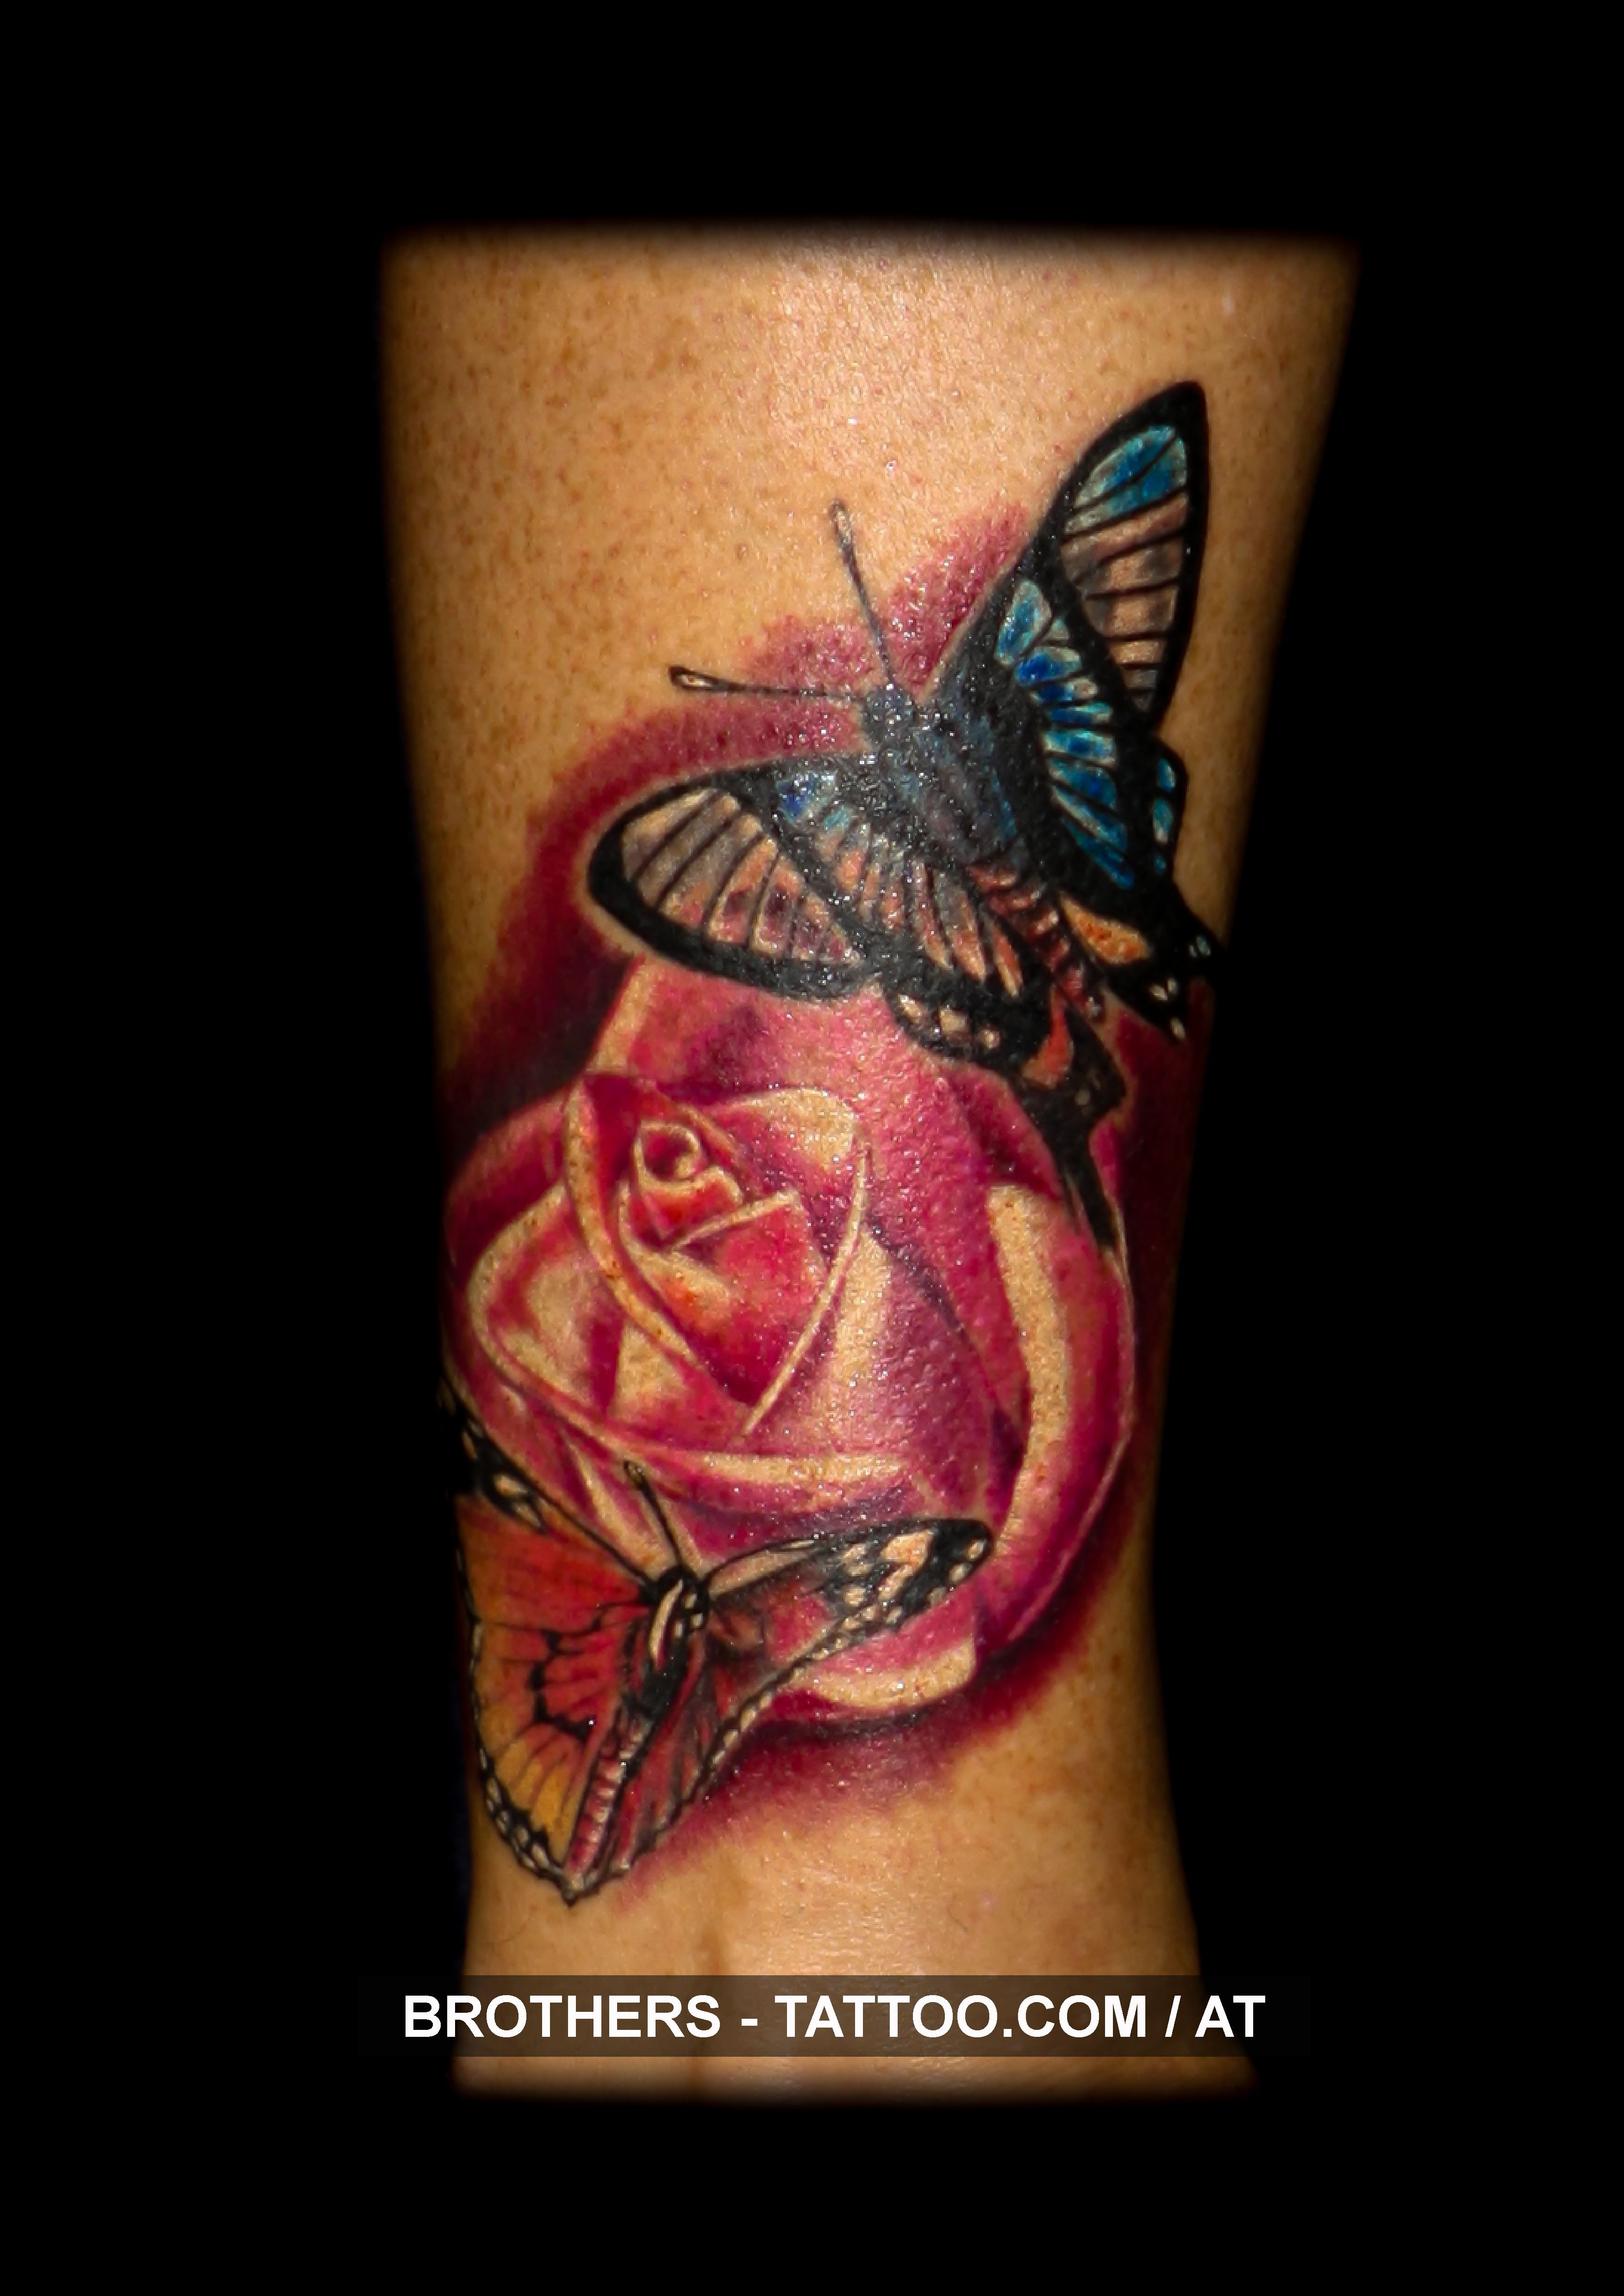 Rose Butterfly Tattoo Color Year 2016 Rose Roses Butterfly Butterflies Pink Color Colorful Butterfly Tattoo Butterfly Tattoo On Shoulder Color Tattoo